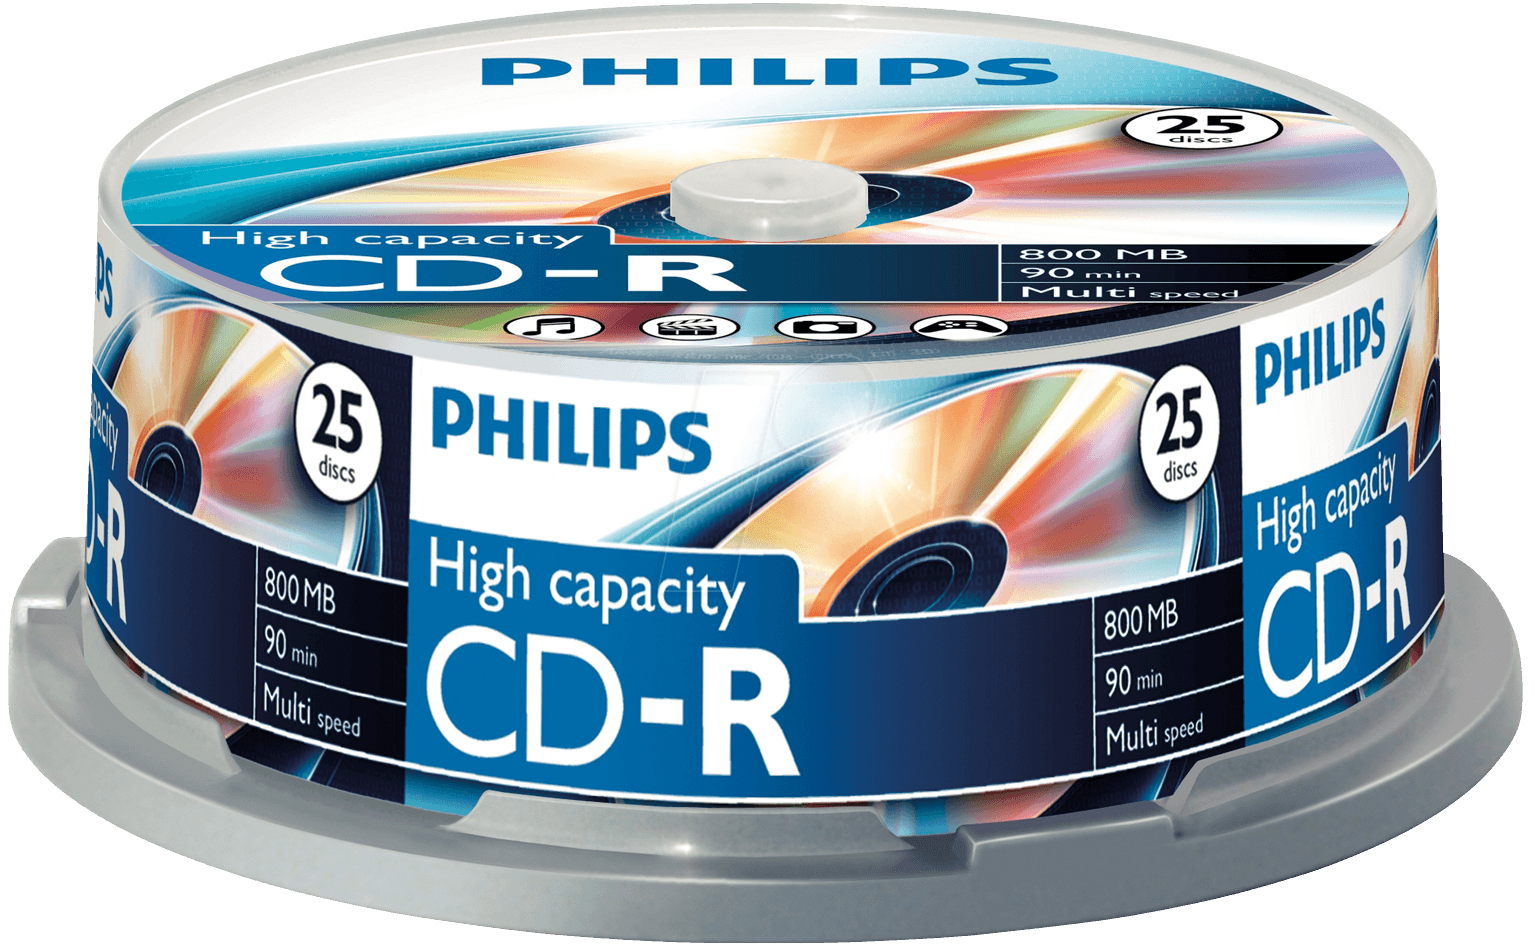 Philips CD-R Rohlinge 25er Spindel Cakebox 800MB/90min CR8D8NB25